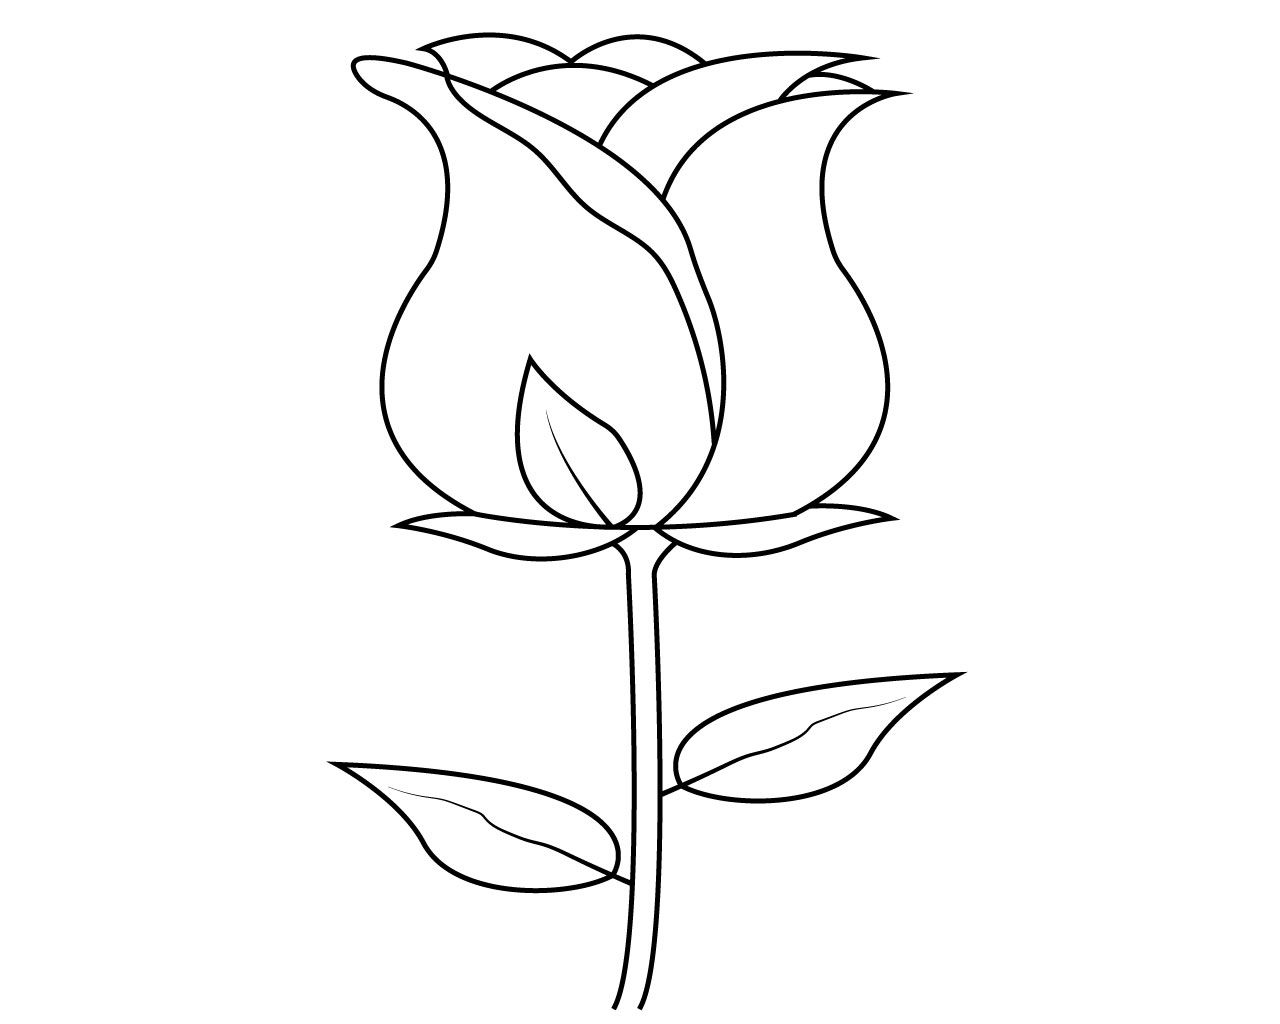 18 Flower Coloring Pages Simple Background In 2021 Mandala Coloring Pages Coloring Pages Flower Coloring Pages